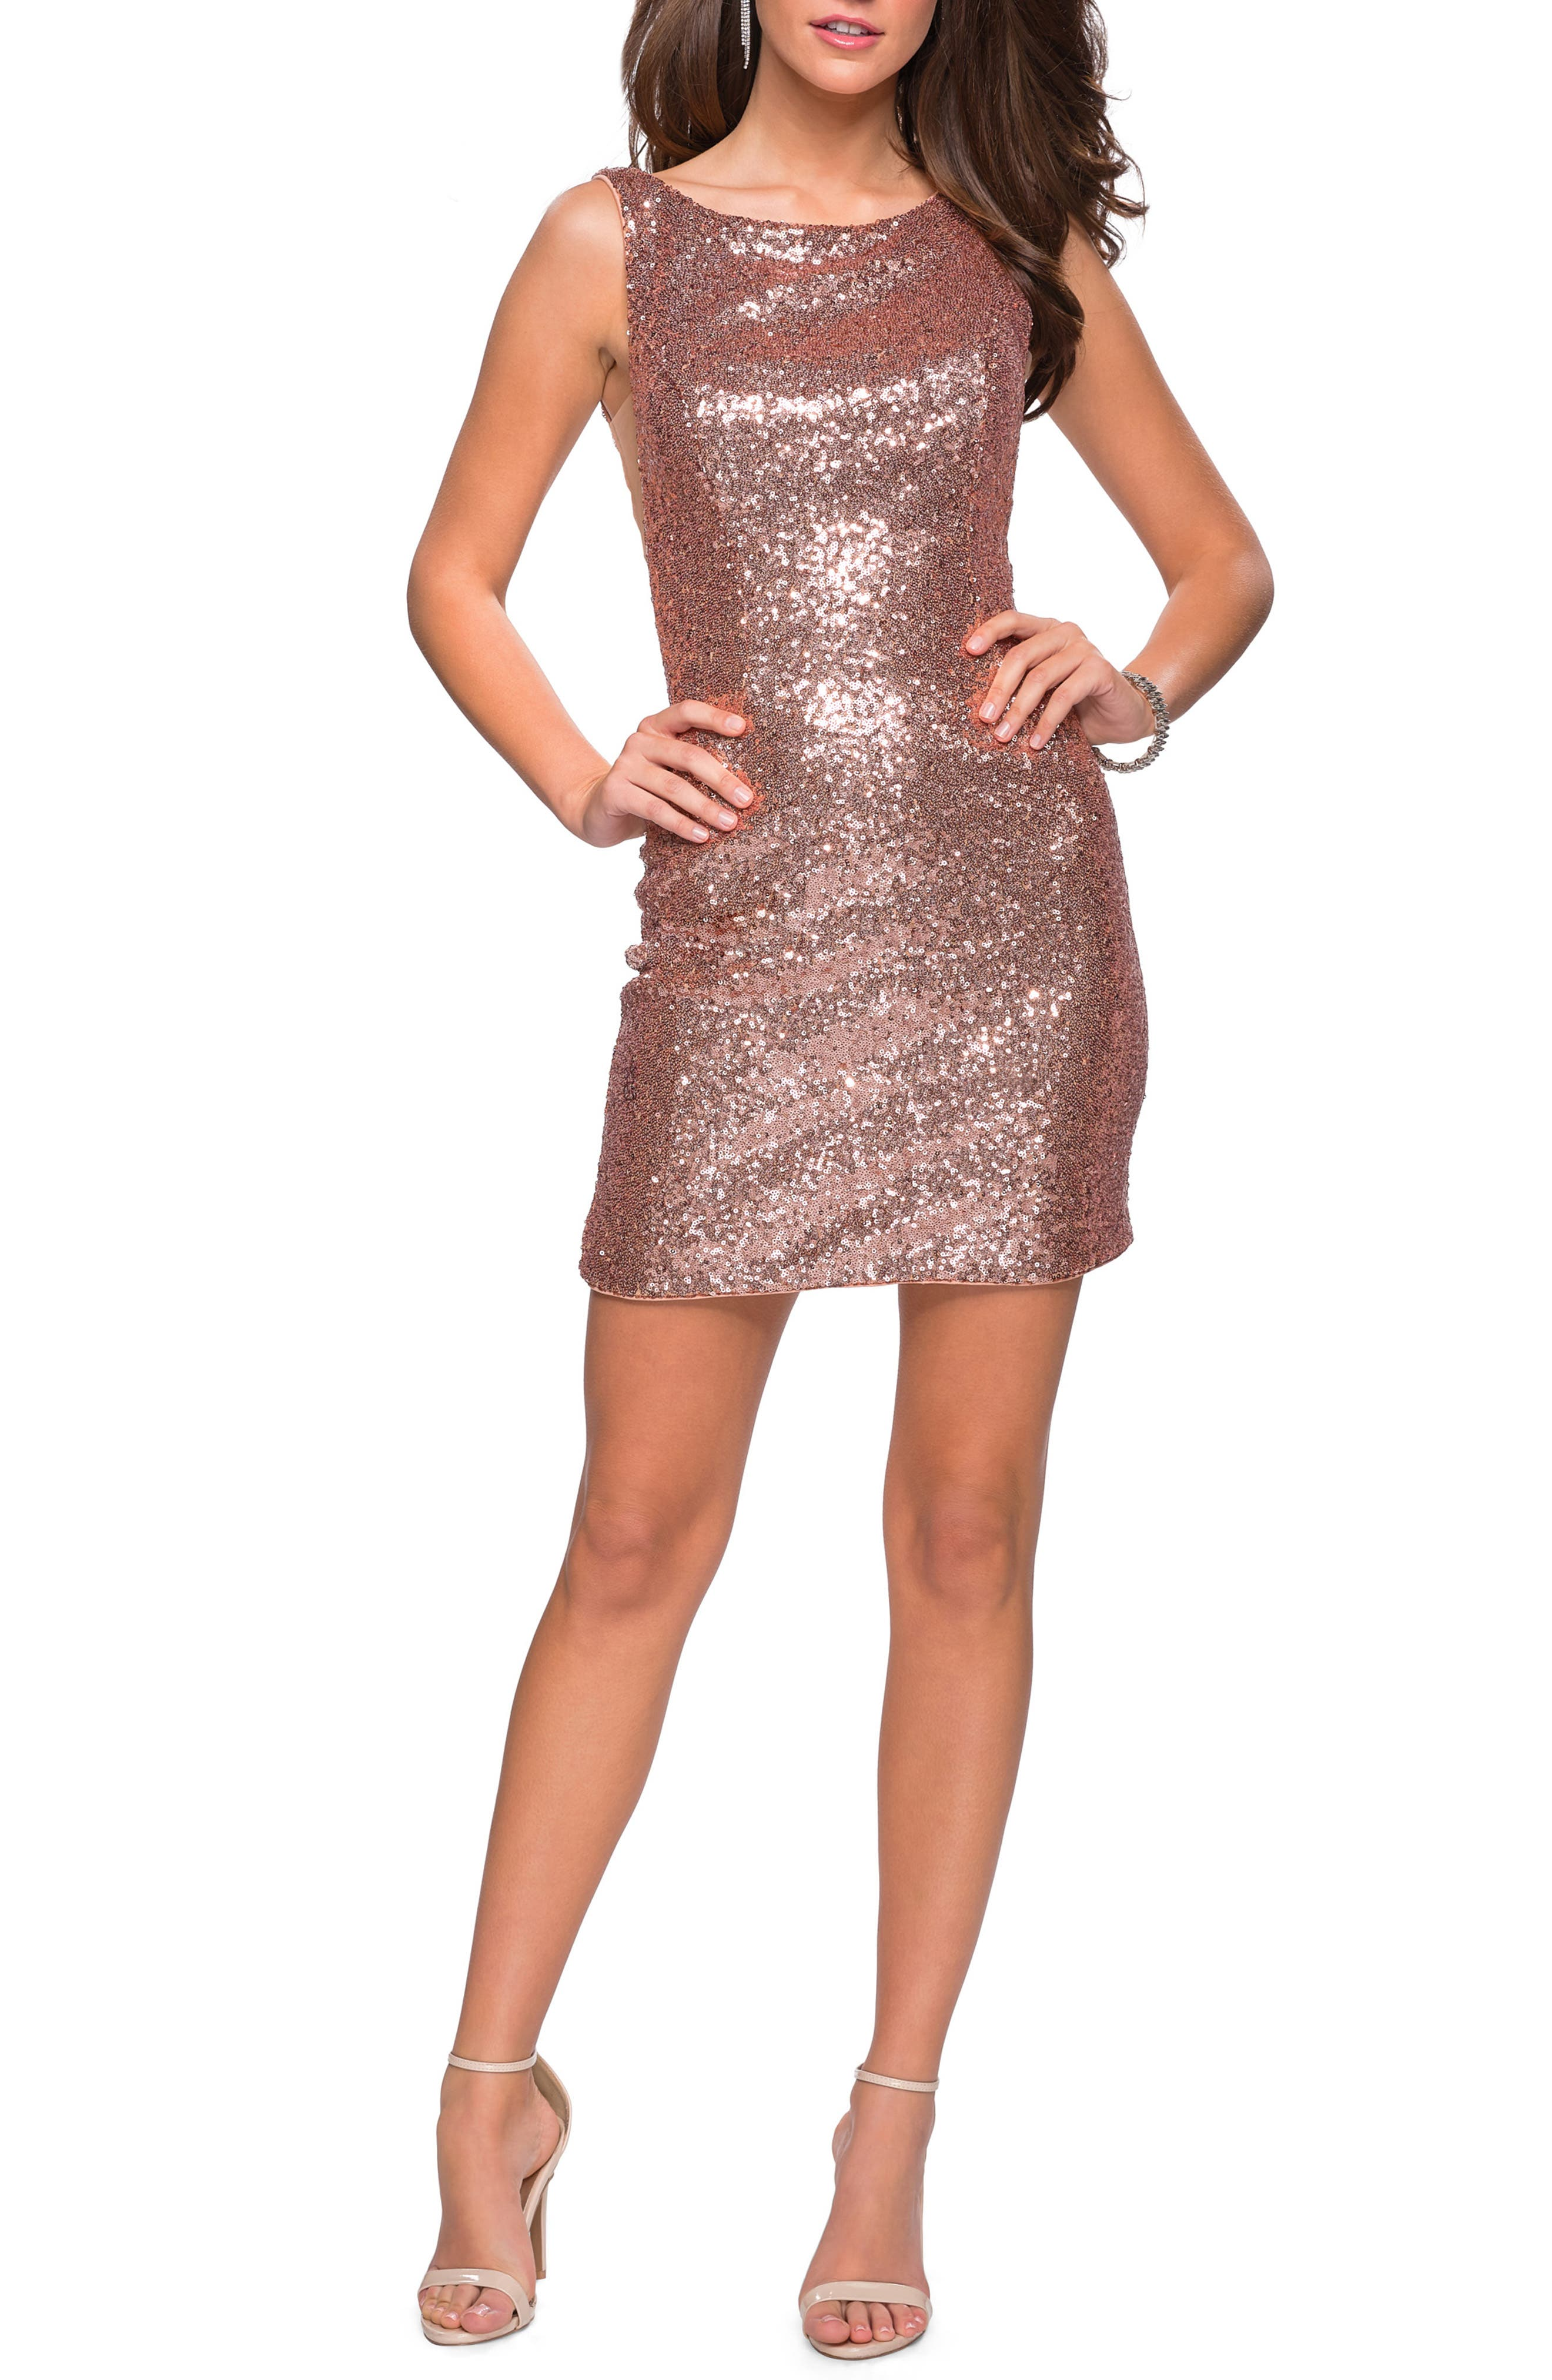 La Femme Sequin Party Sheath, Pink